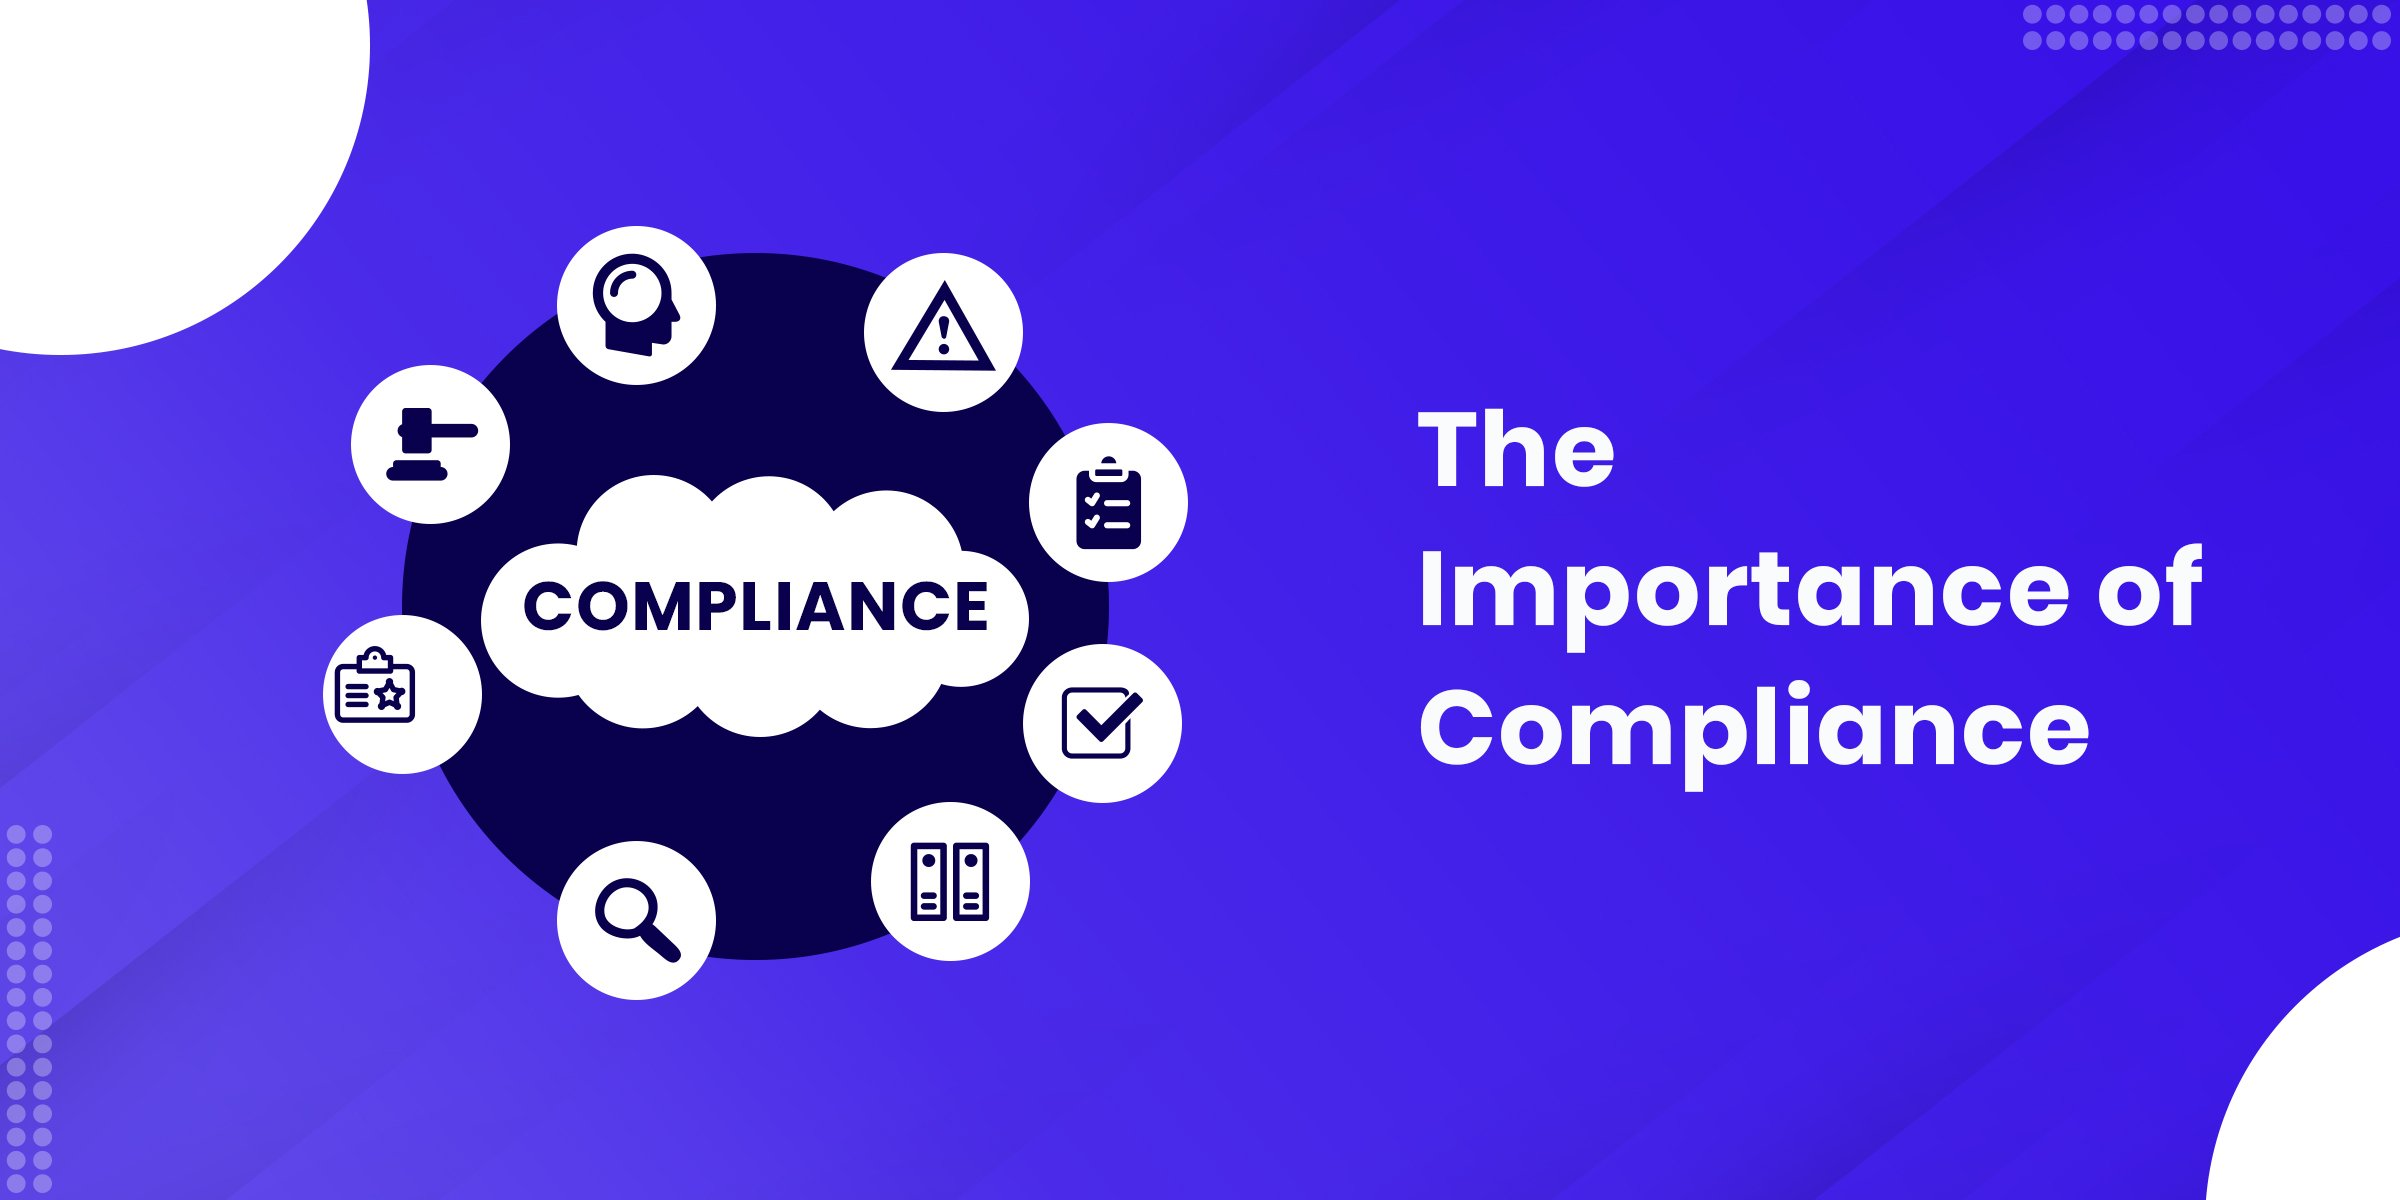 The Importance of Compliance